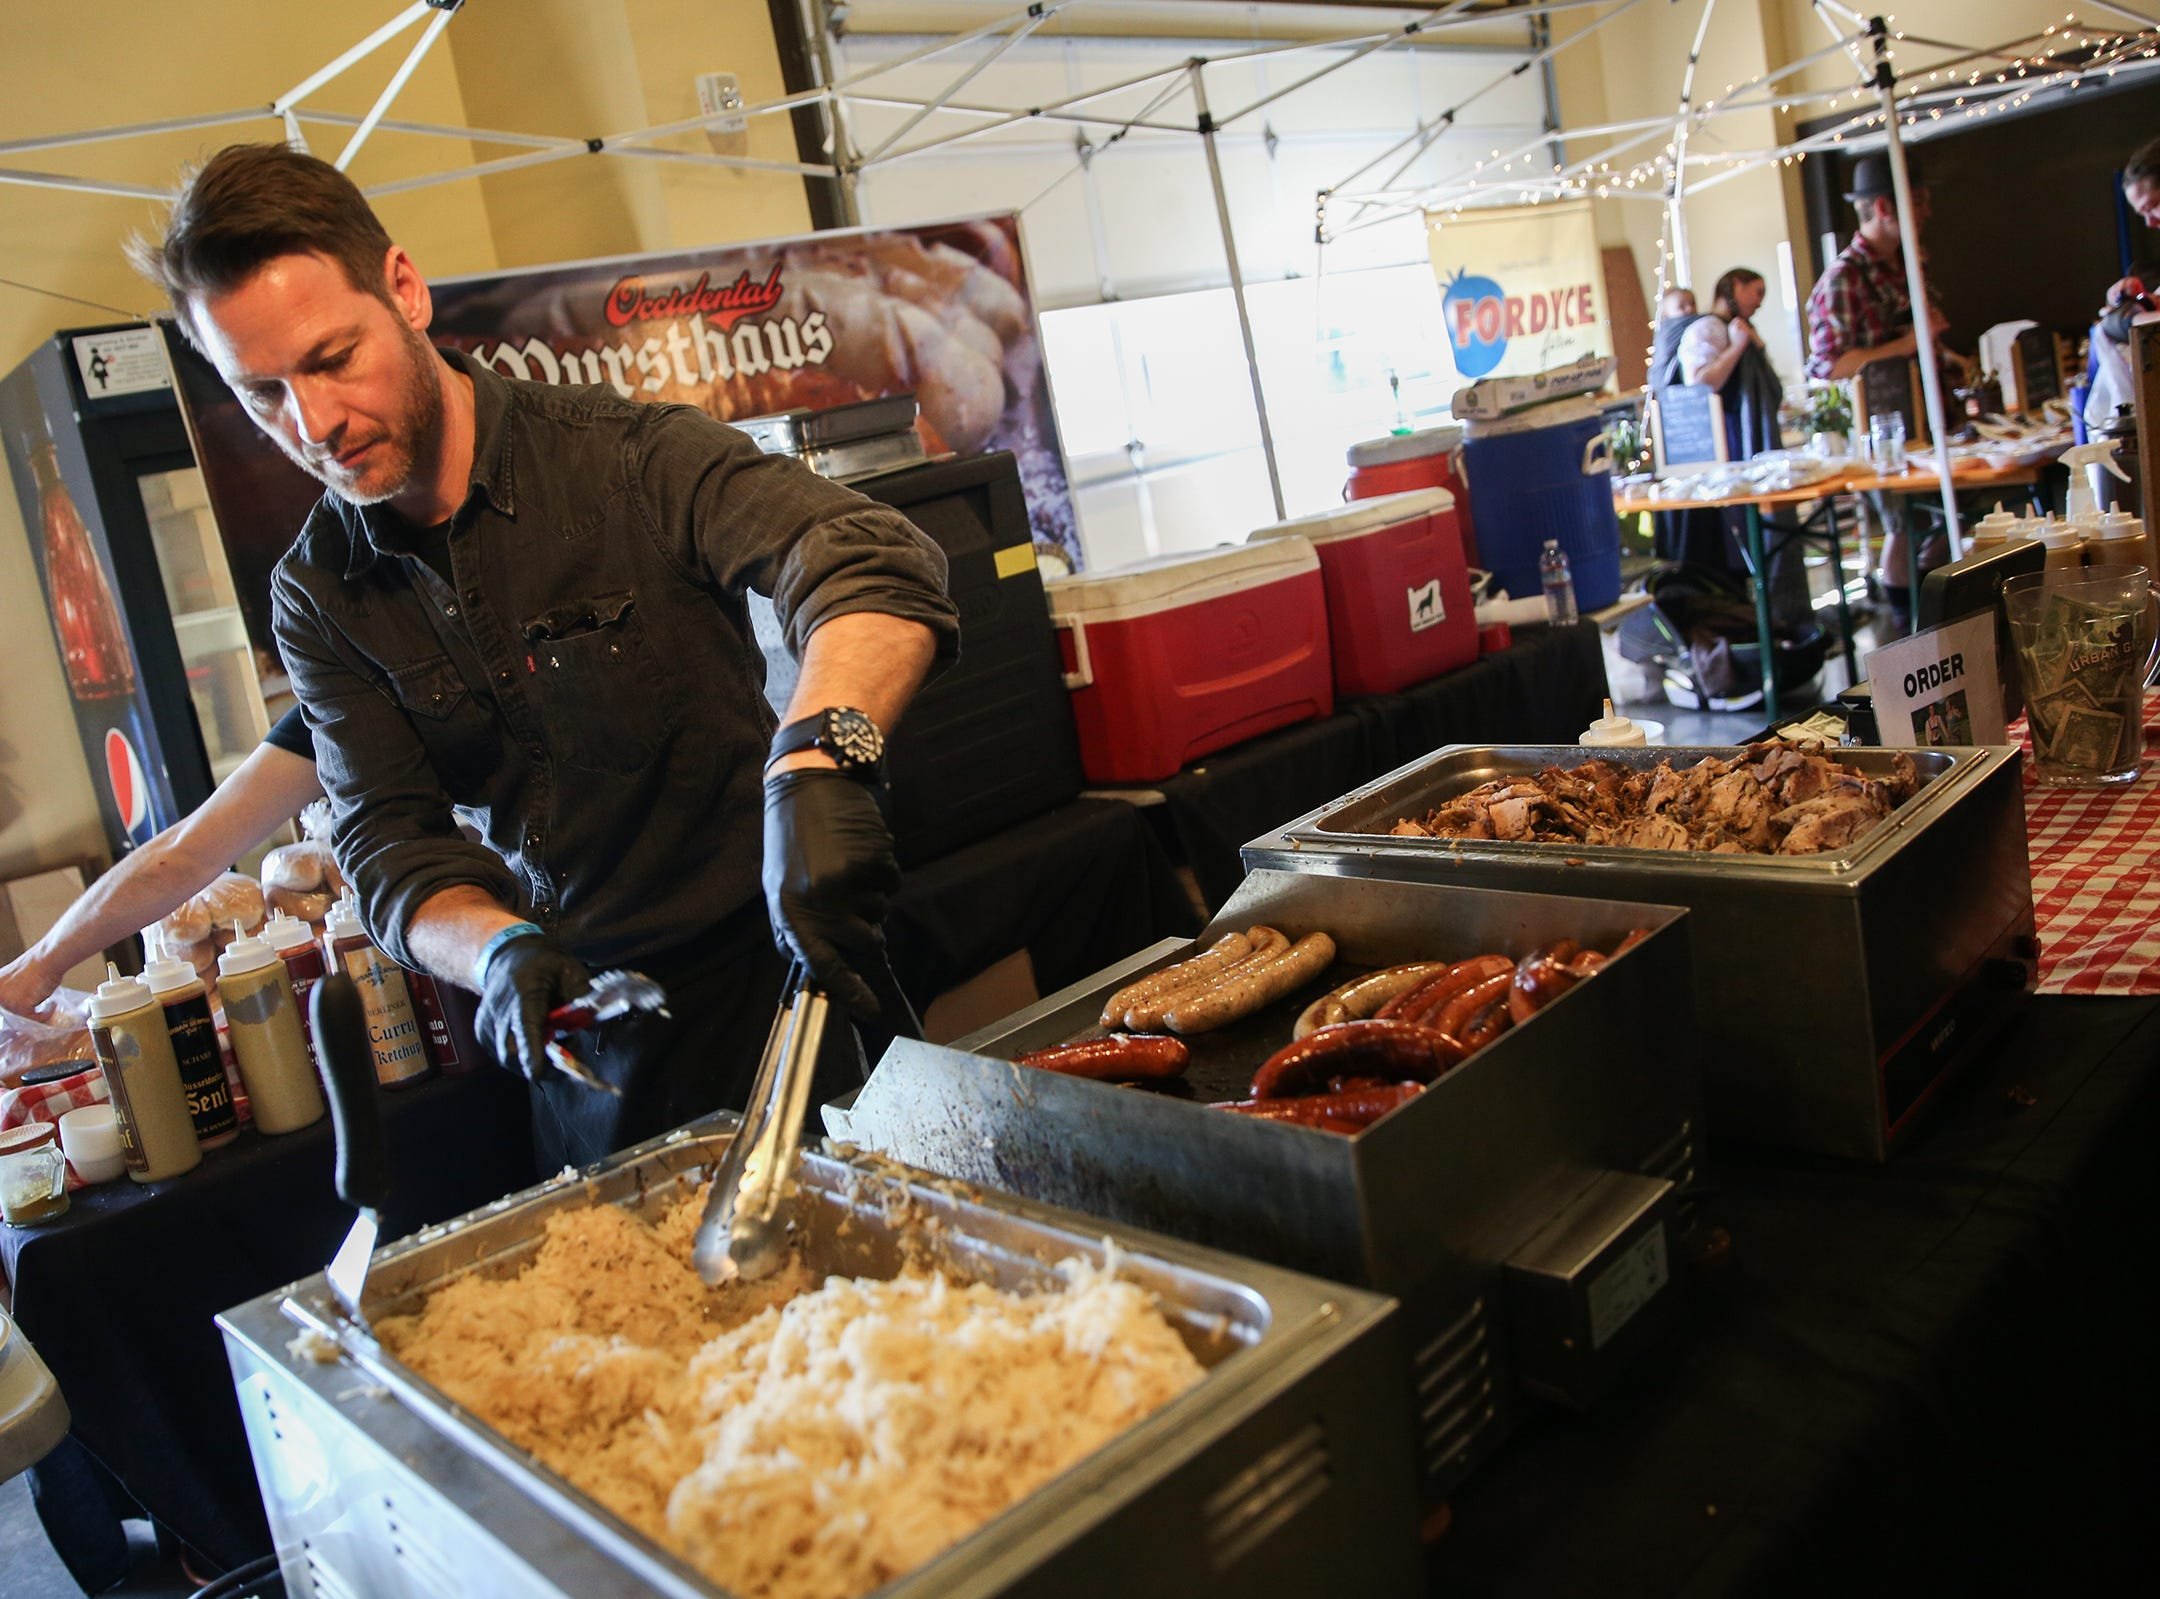 David Gluth, of Portland based Urban German Grill, serves a plate during the annual Volksfest in Mt. Angel on Saturday, March 2, 2019.